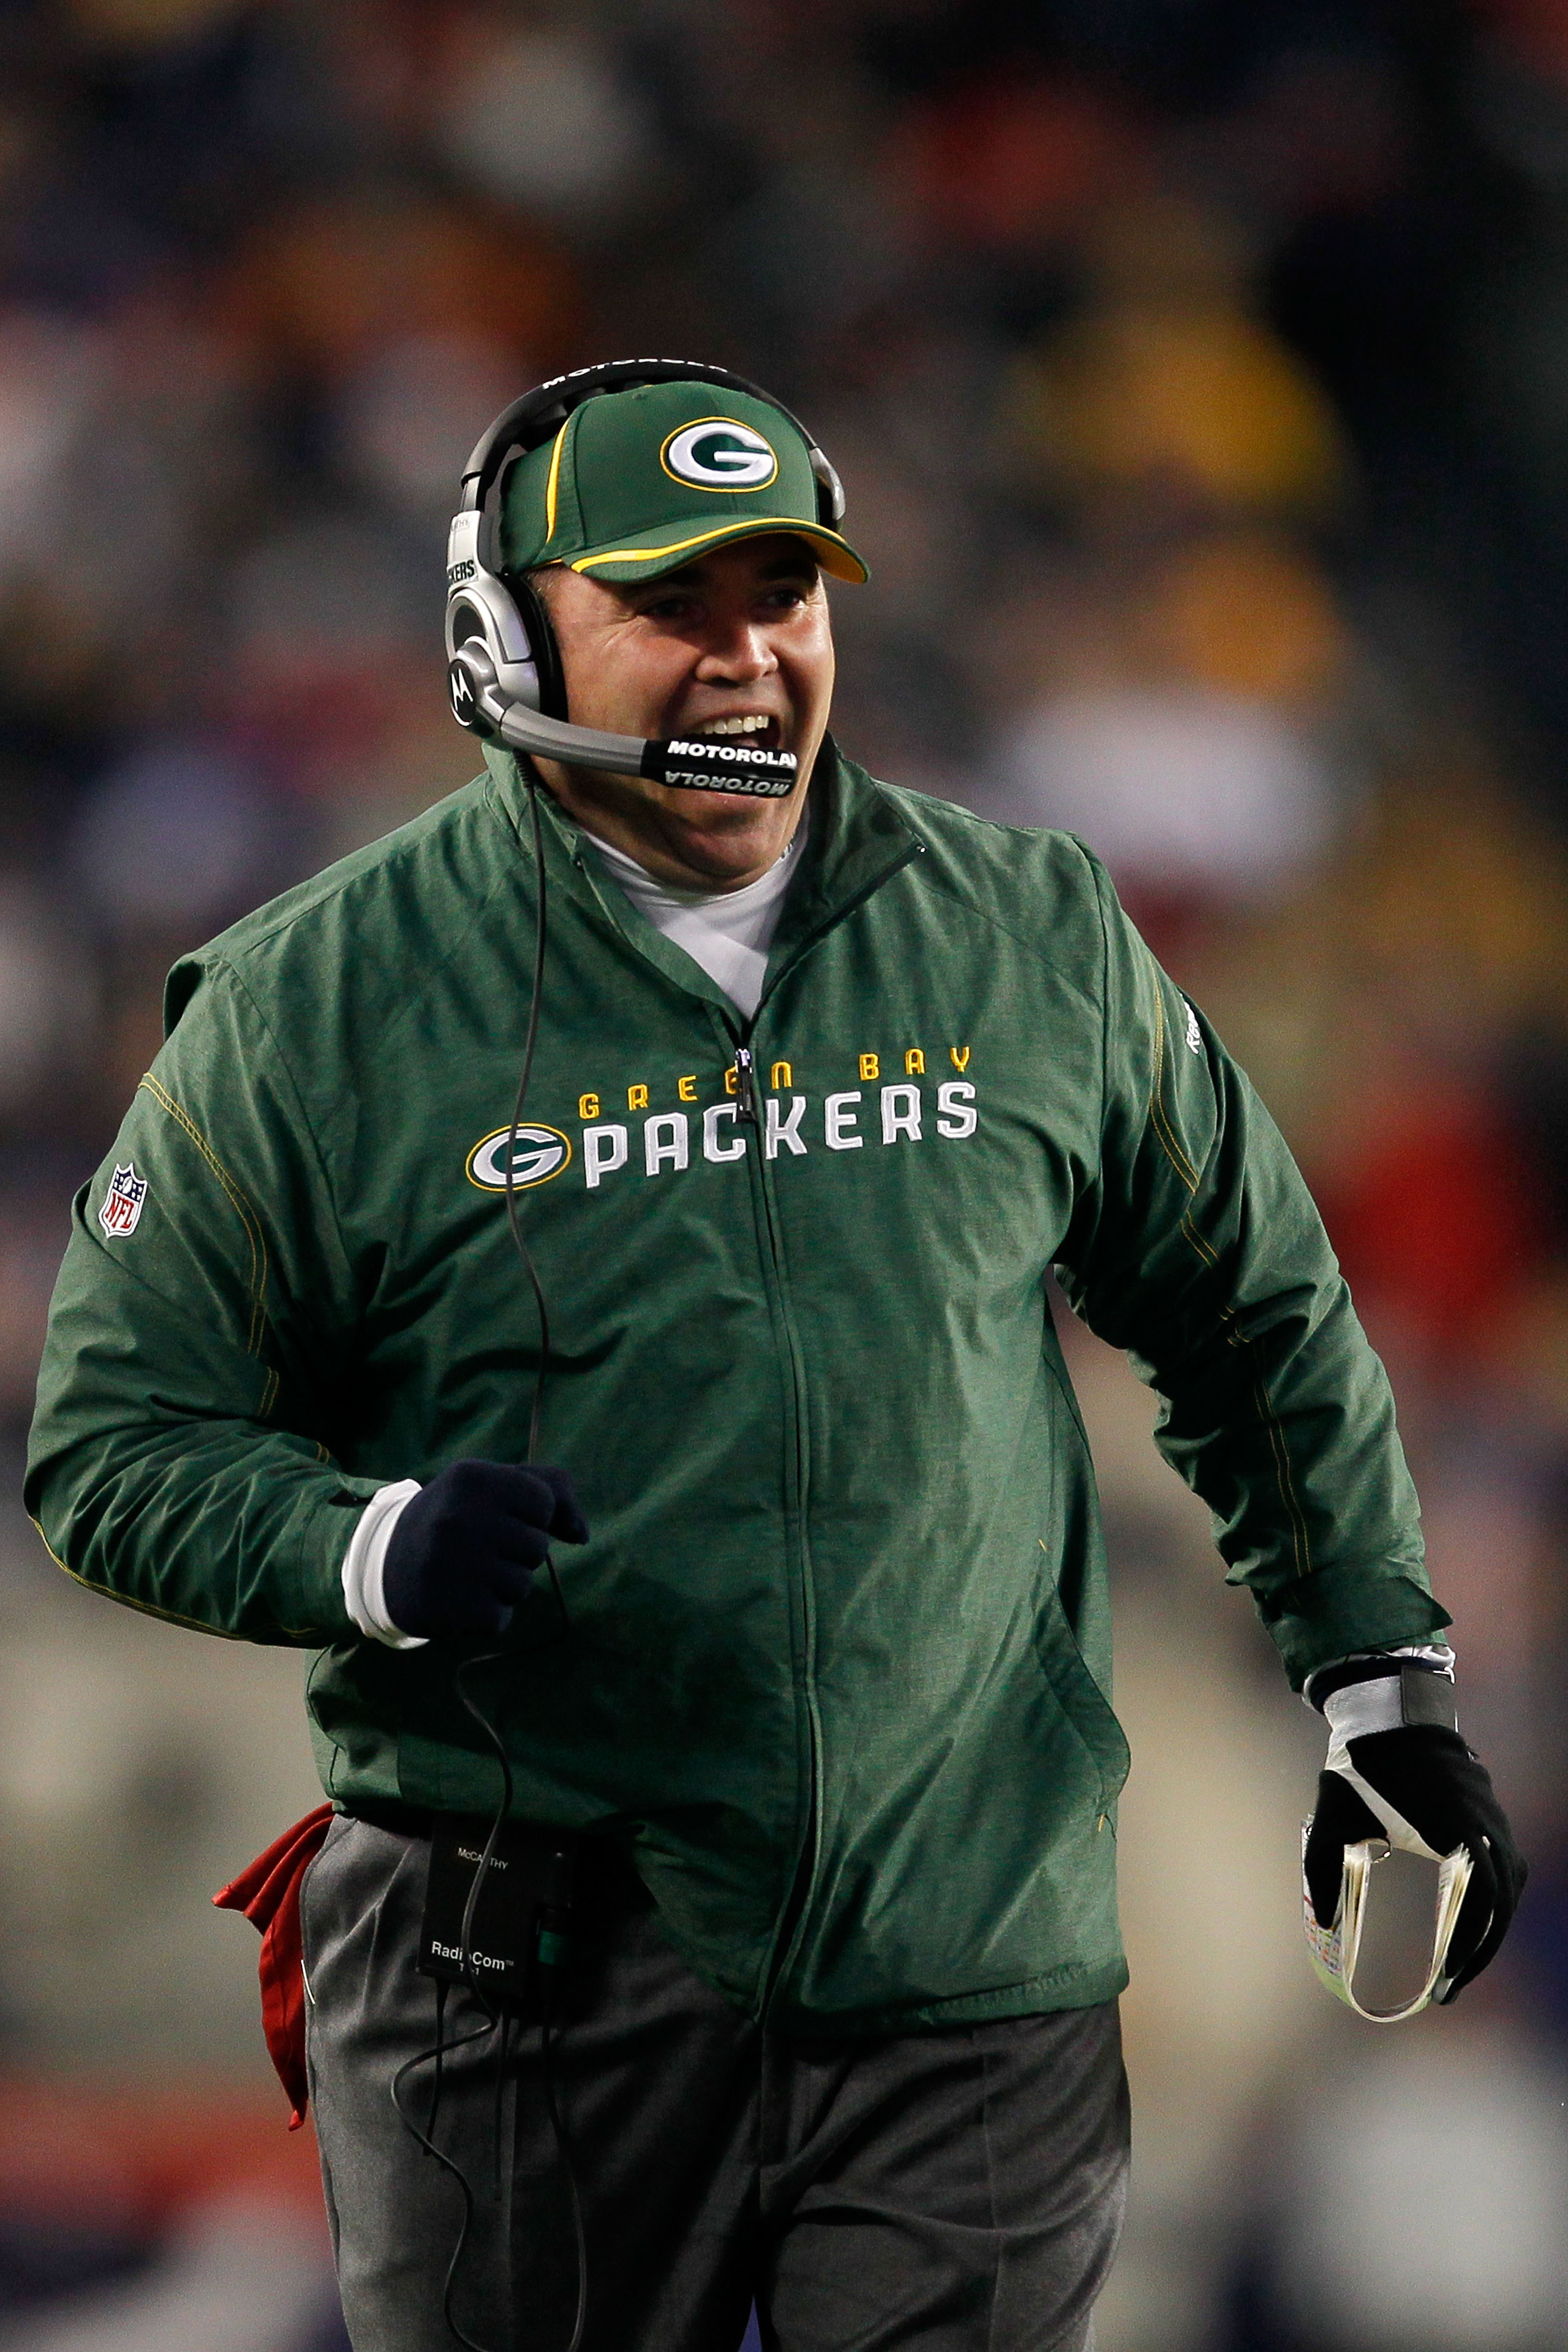 FOXBORO, MA - DECEMBER 19:  Mike McCarthy, head coach of the Green Bay Packers, reacts during the third quarter of the game against the New England Patriots at Gillette Stadium on December 19, 2010 in Foxboro, Massachusetts.  (Photo by Jim Rogash/Getty Im